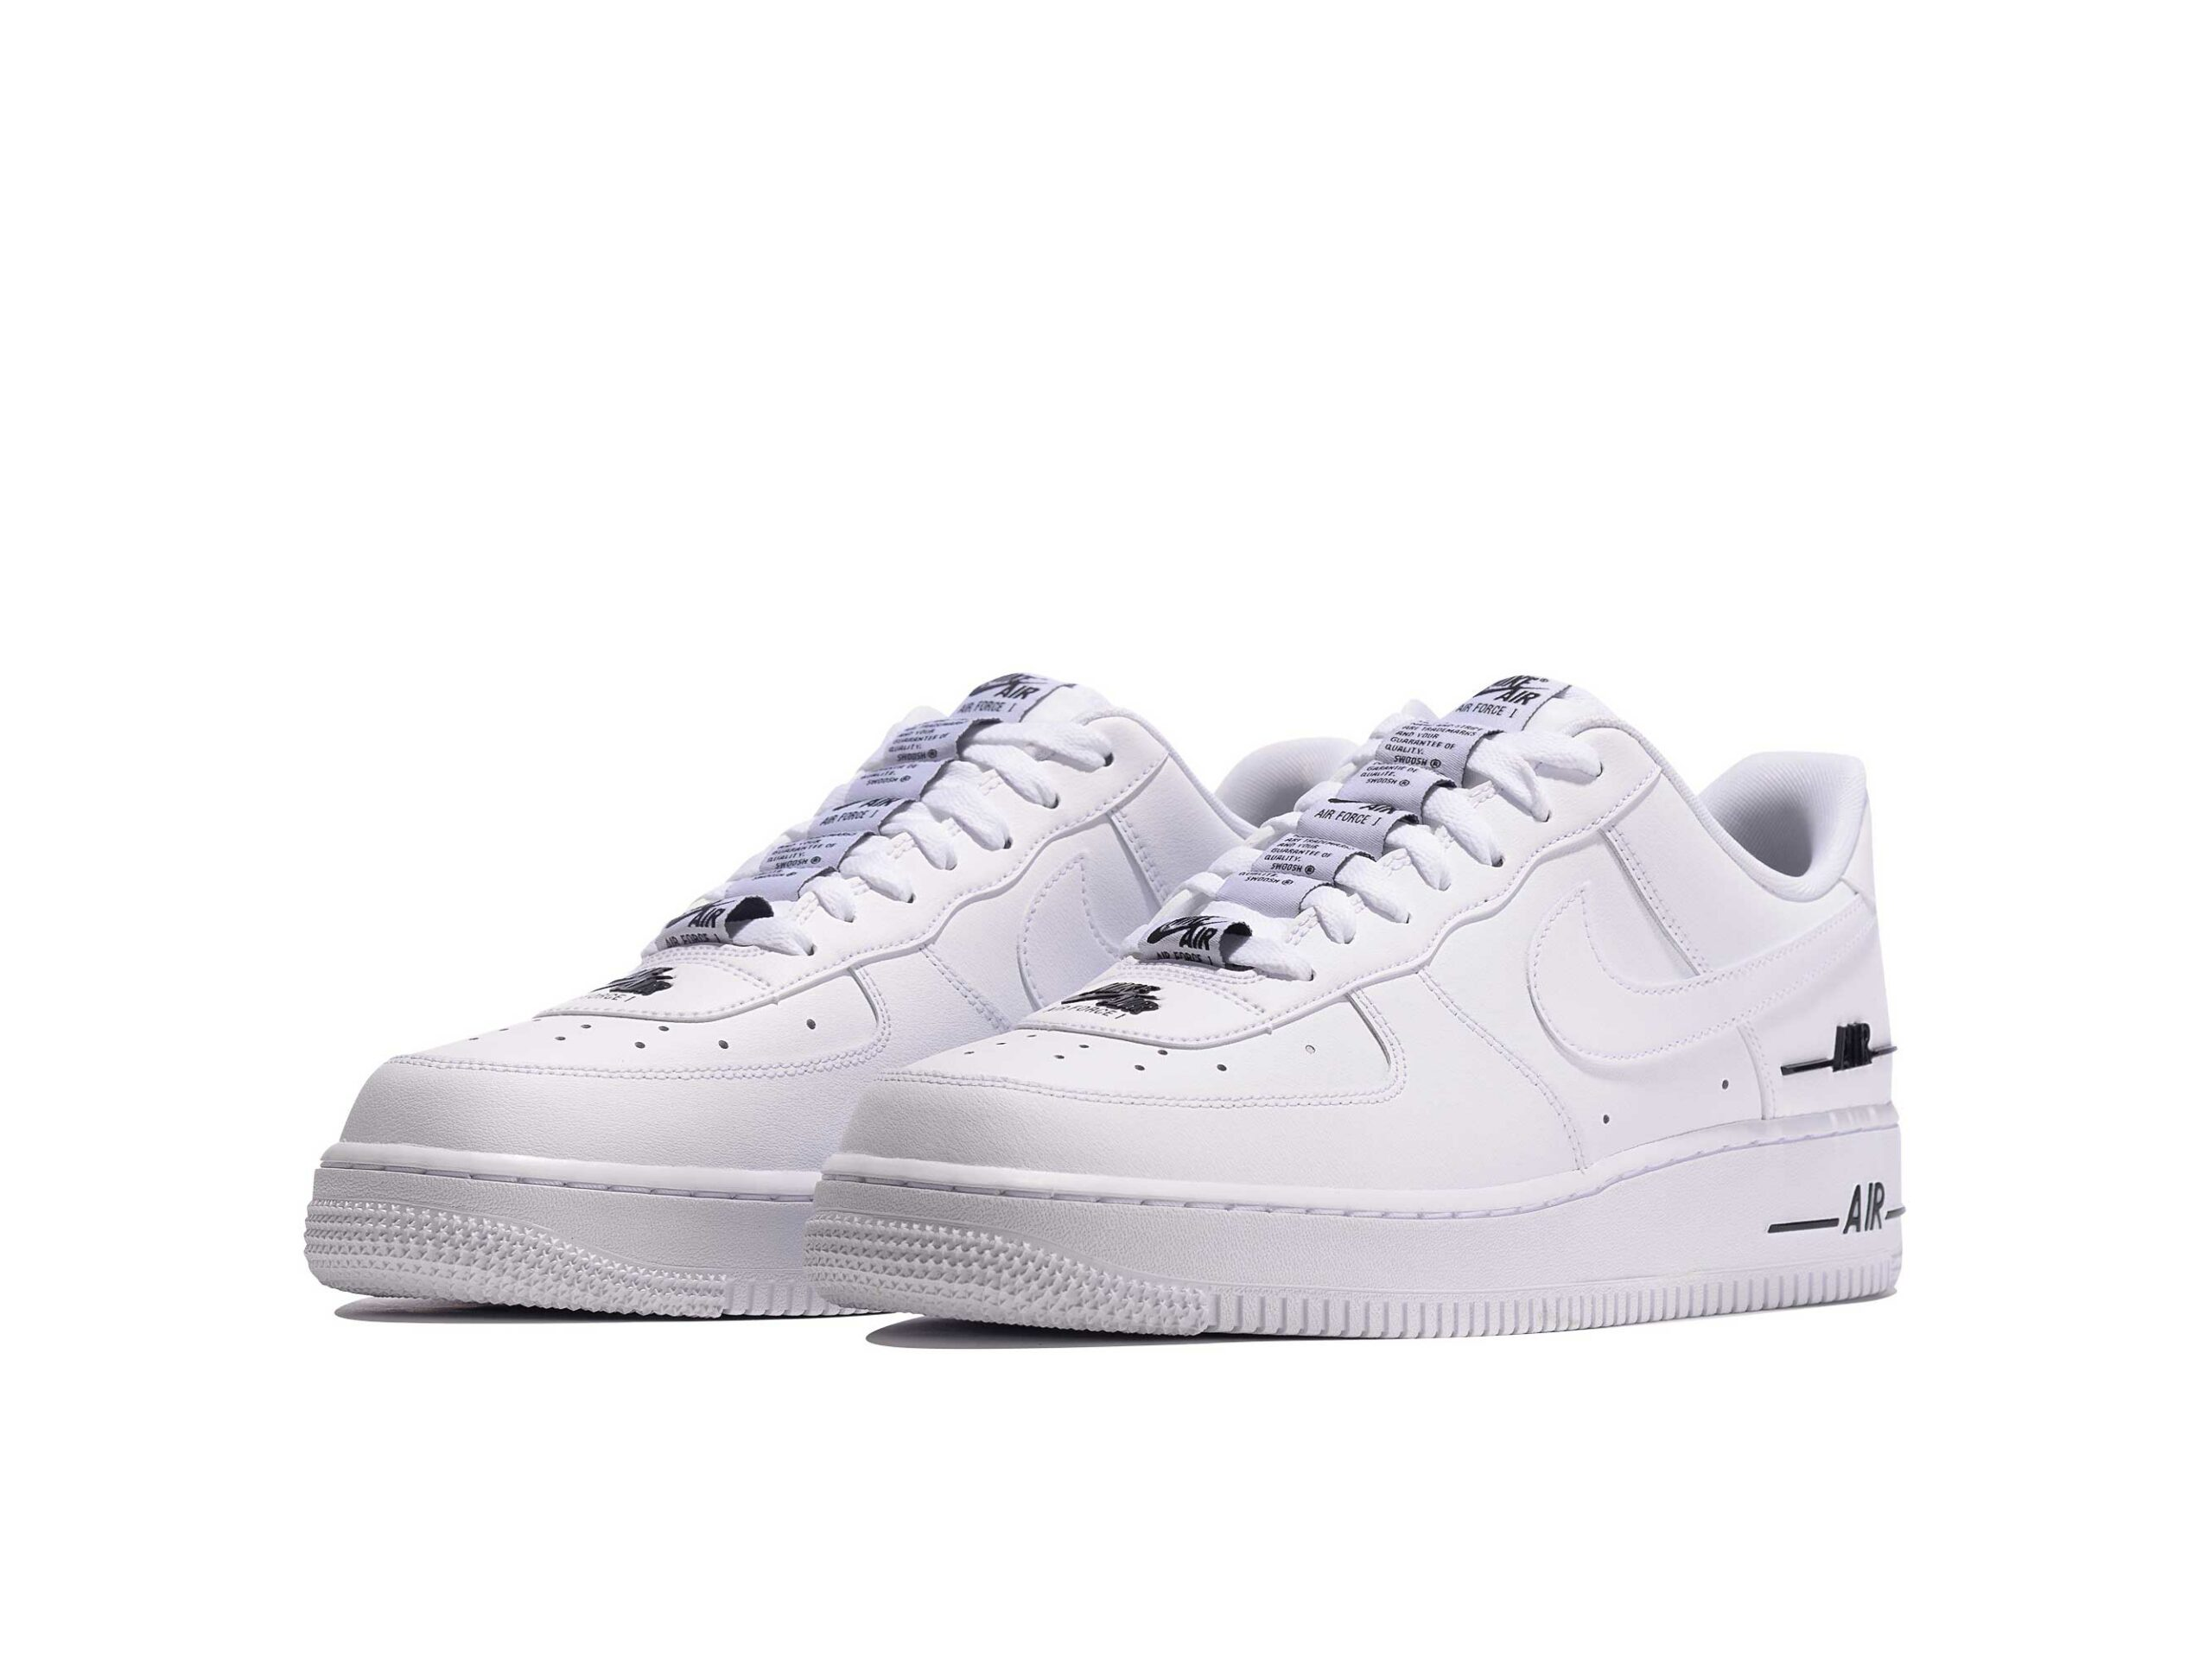 nike air force 1 07 sneakers CJ379_100 купить